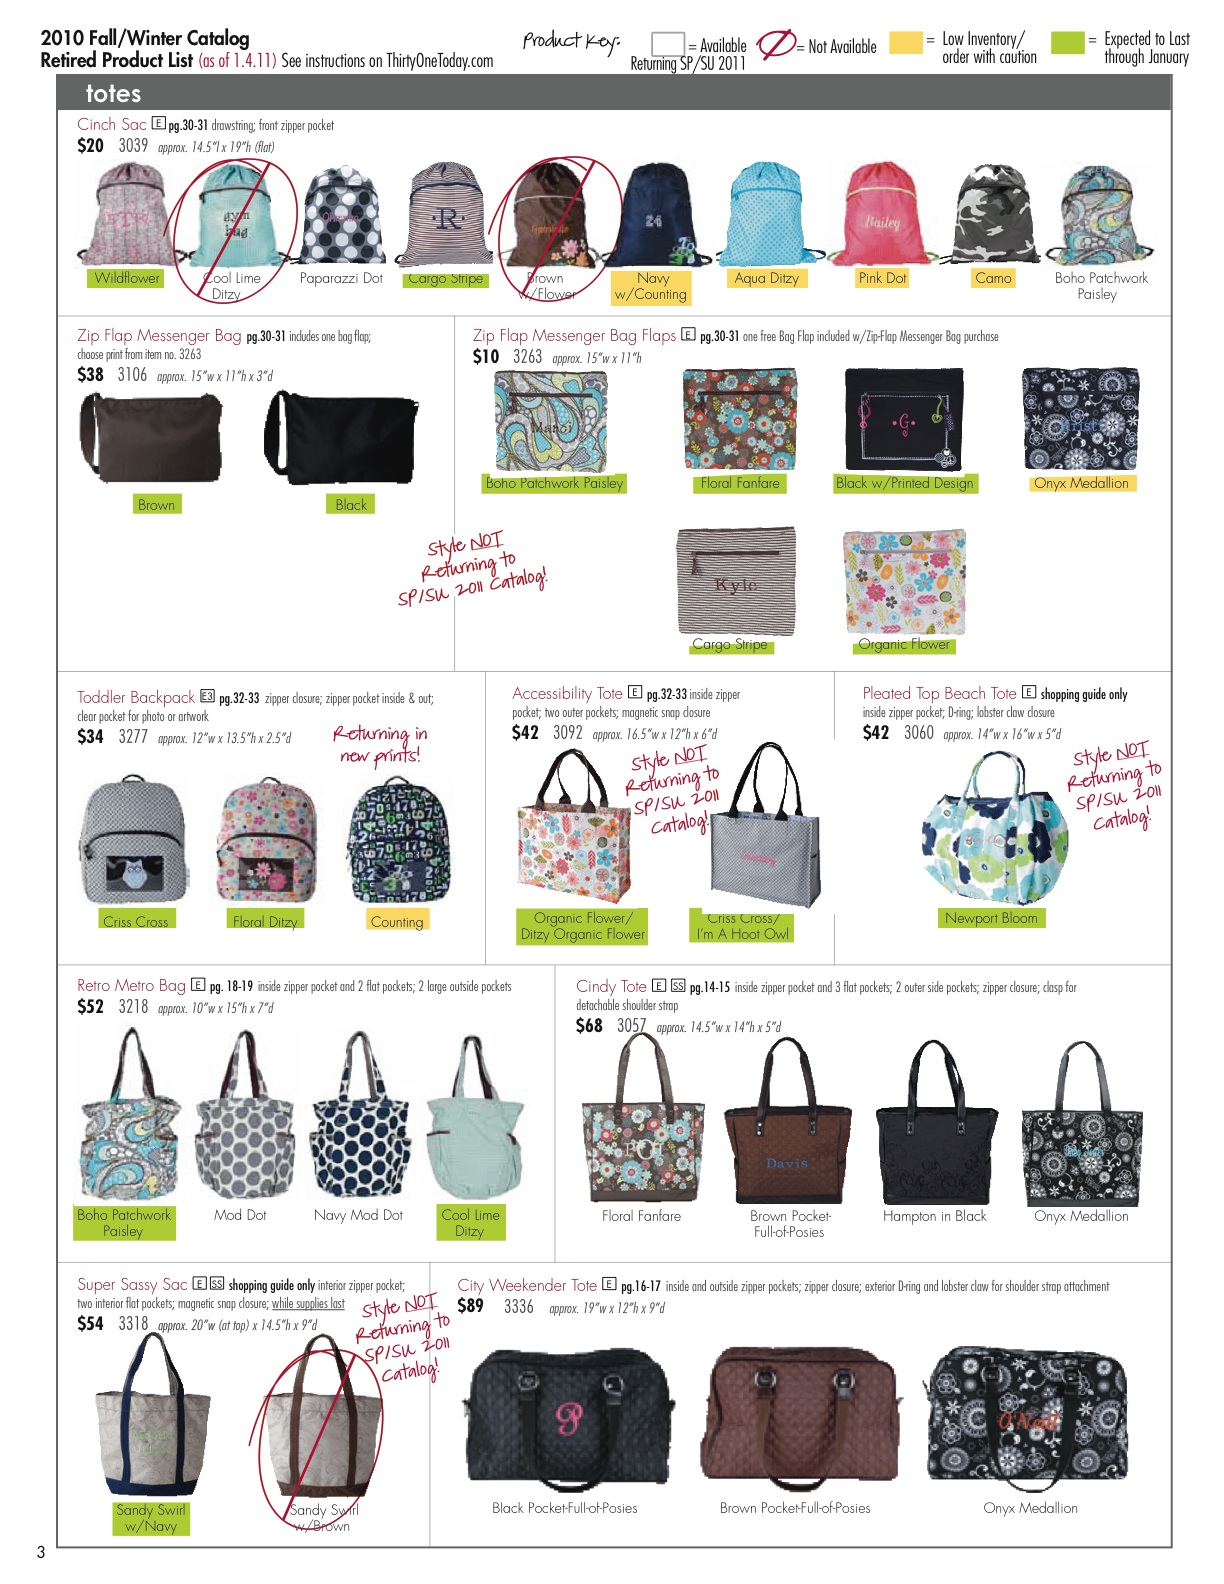 Personalized Bags, Totes and Gifts: 2010 Retired Products and Change ...